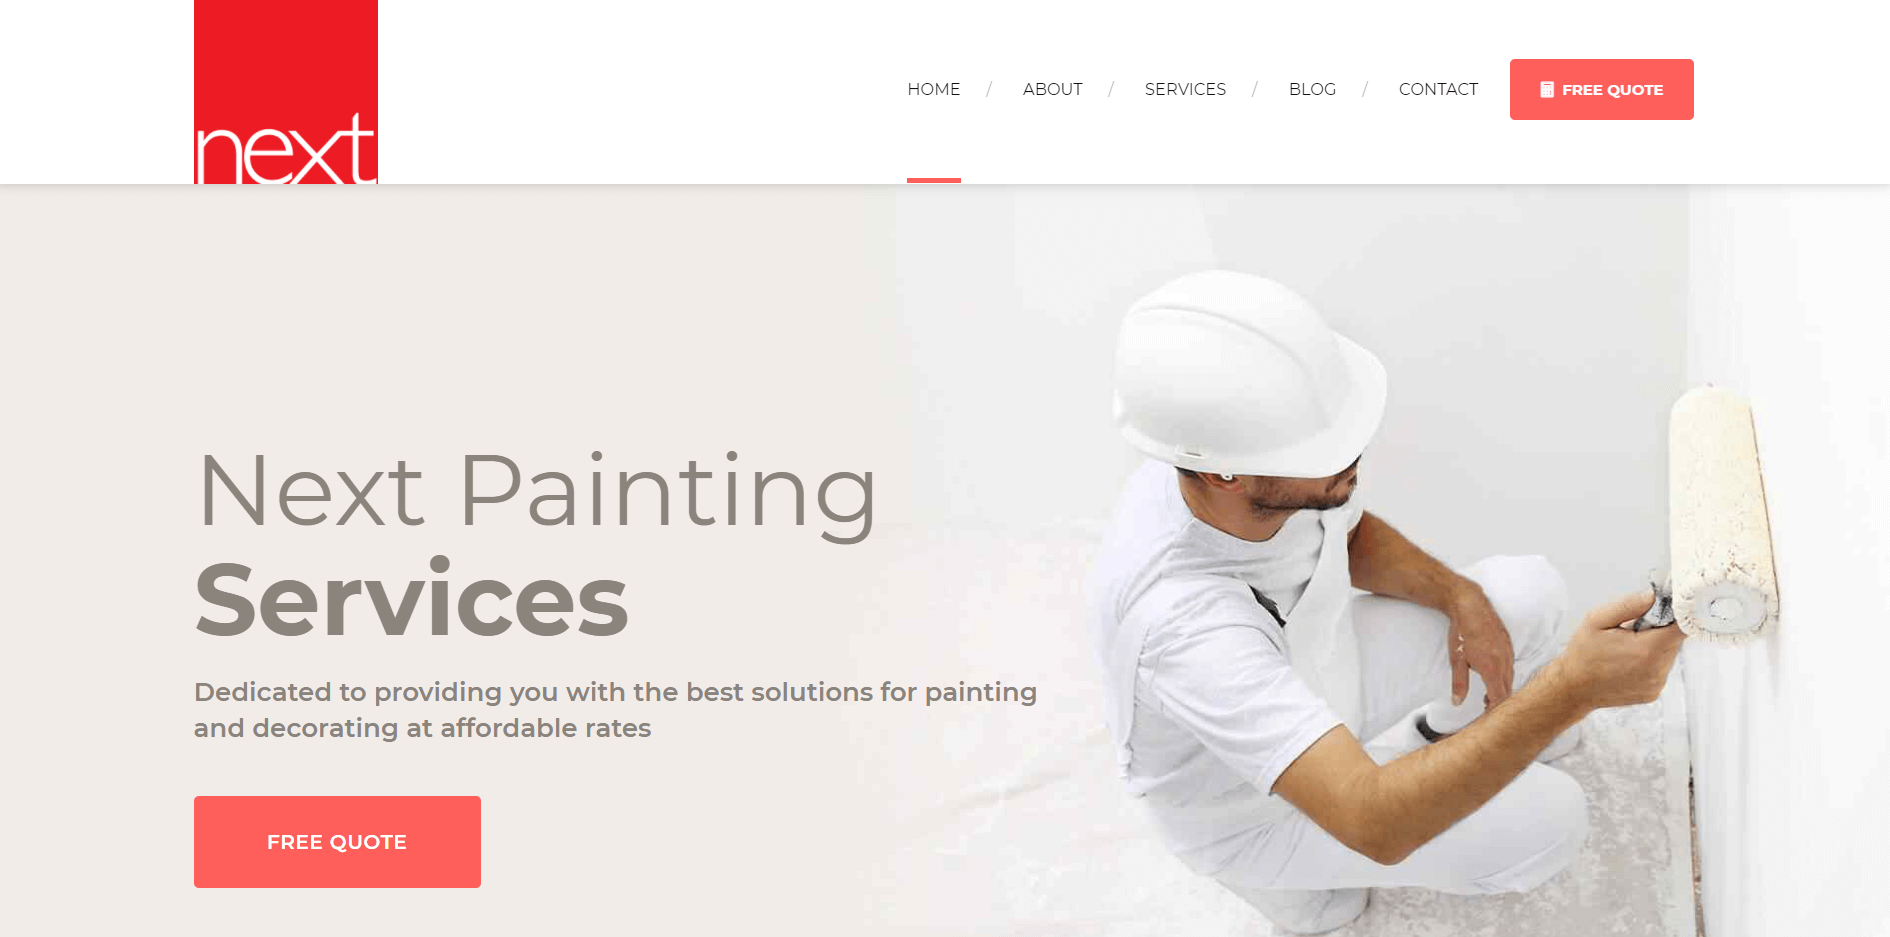 next painting services